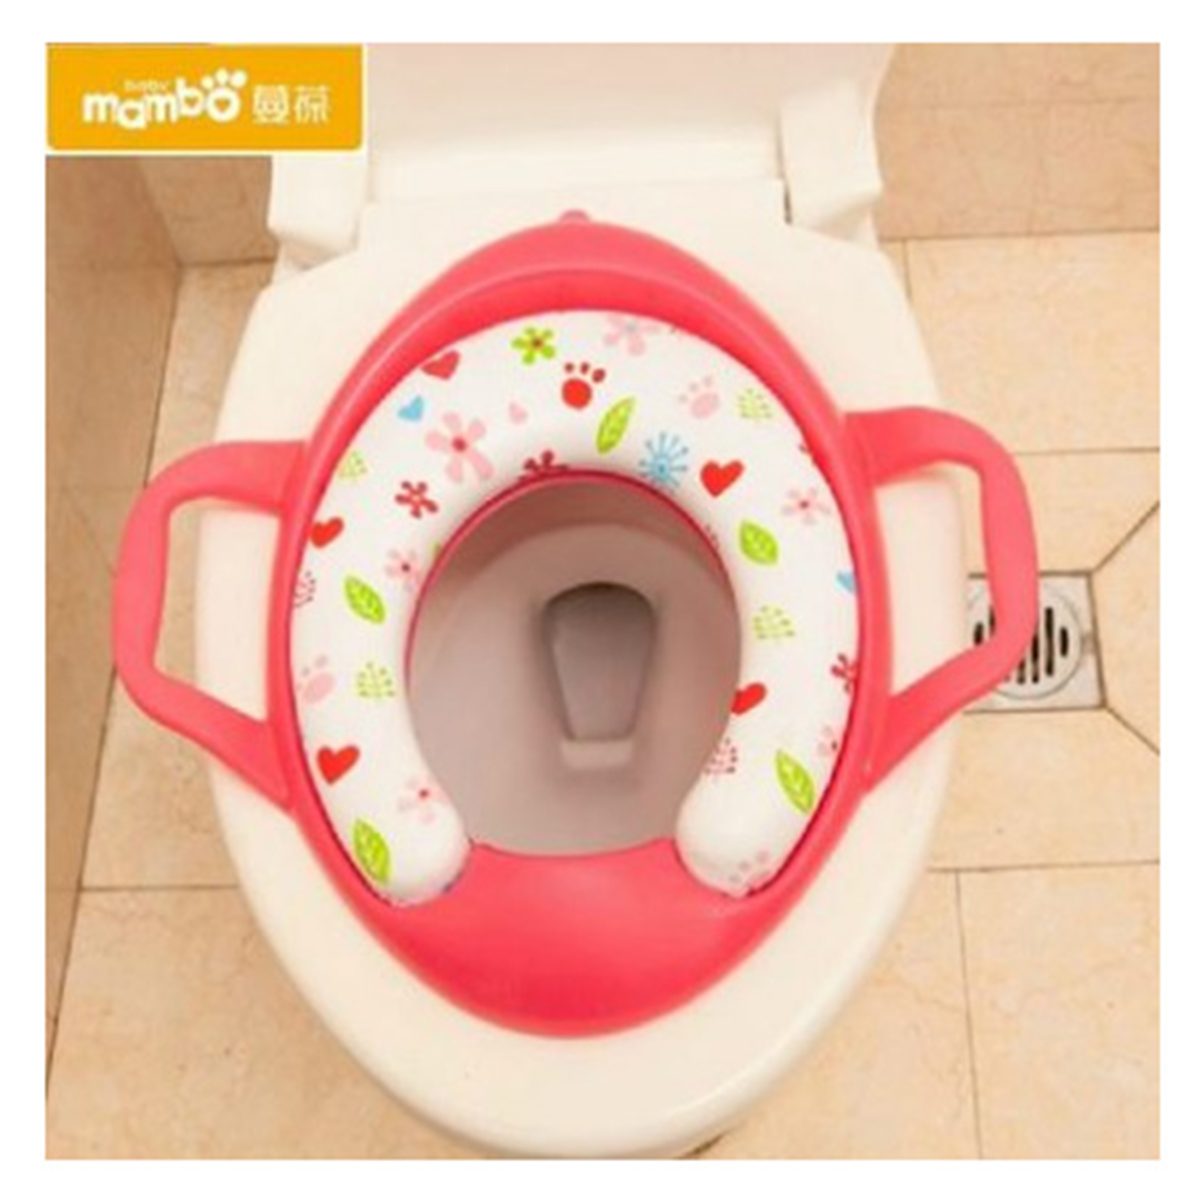 Portable Baby Potty Toilet Training Seat Girls Boy Potties Kids Chair Toilet Safe Seats with Armrests Gril Boy Trainers